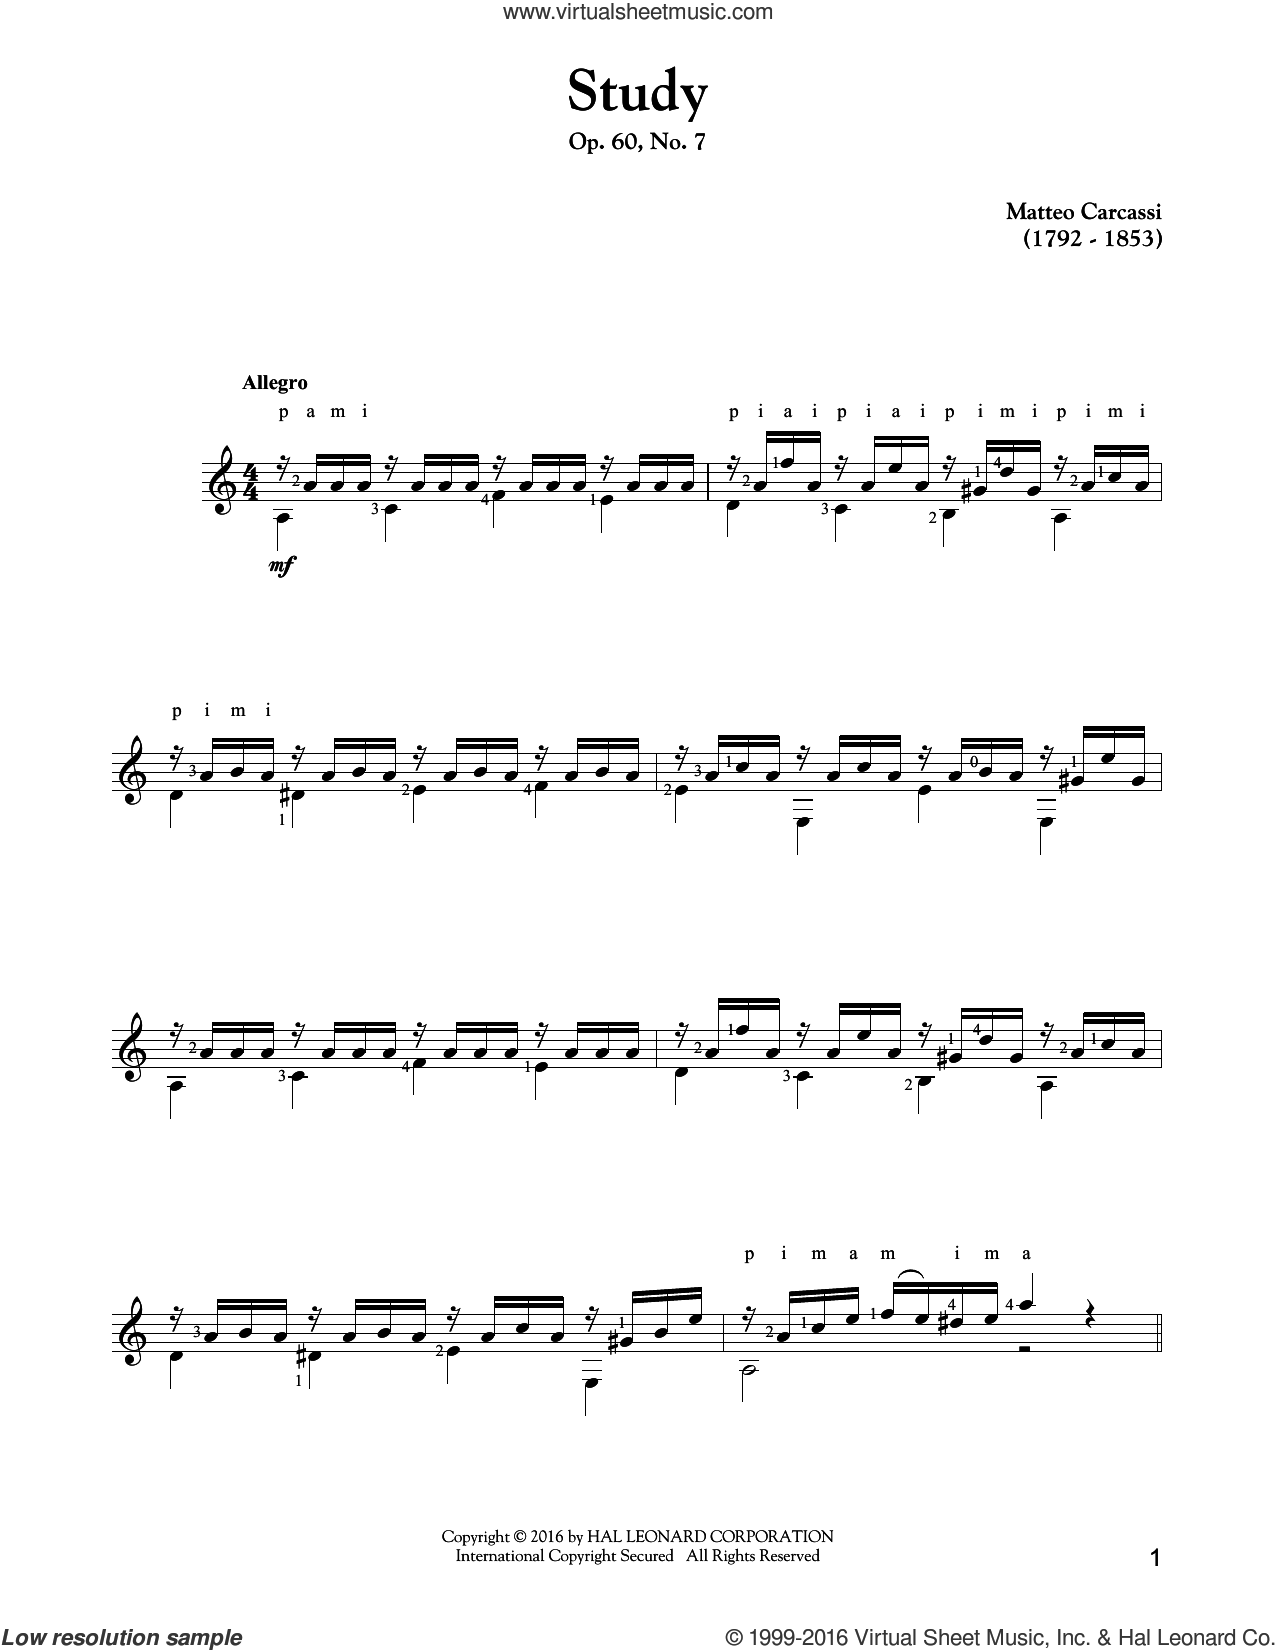 Study, Op. 60, No. 7 sheet music for guitar solo by Matteo Carcassi, classical score, intermediate